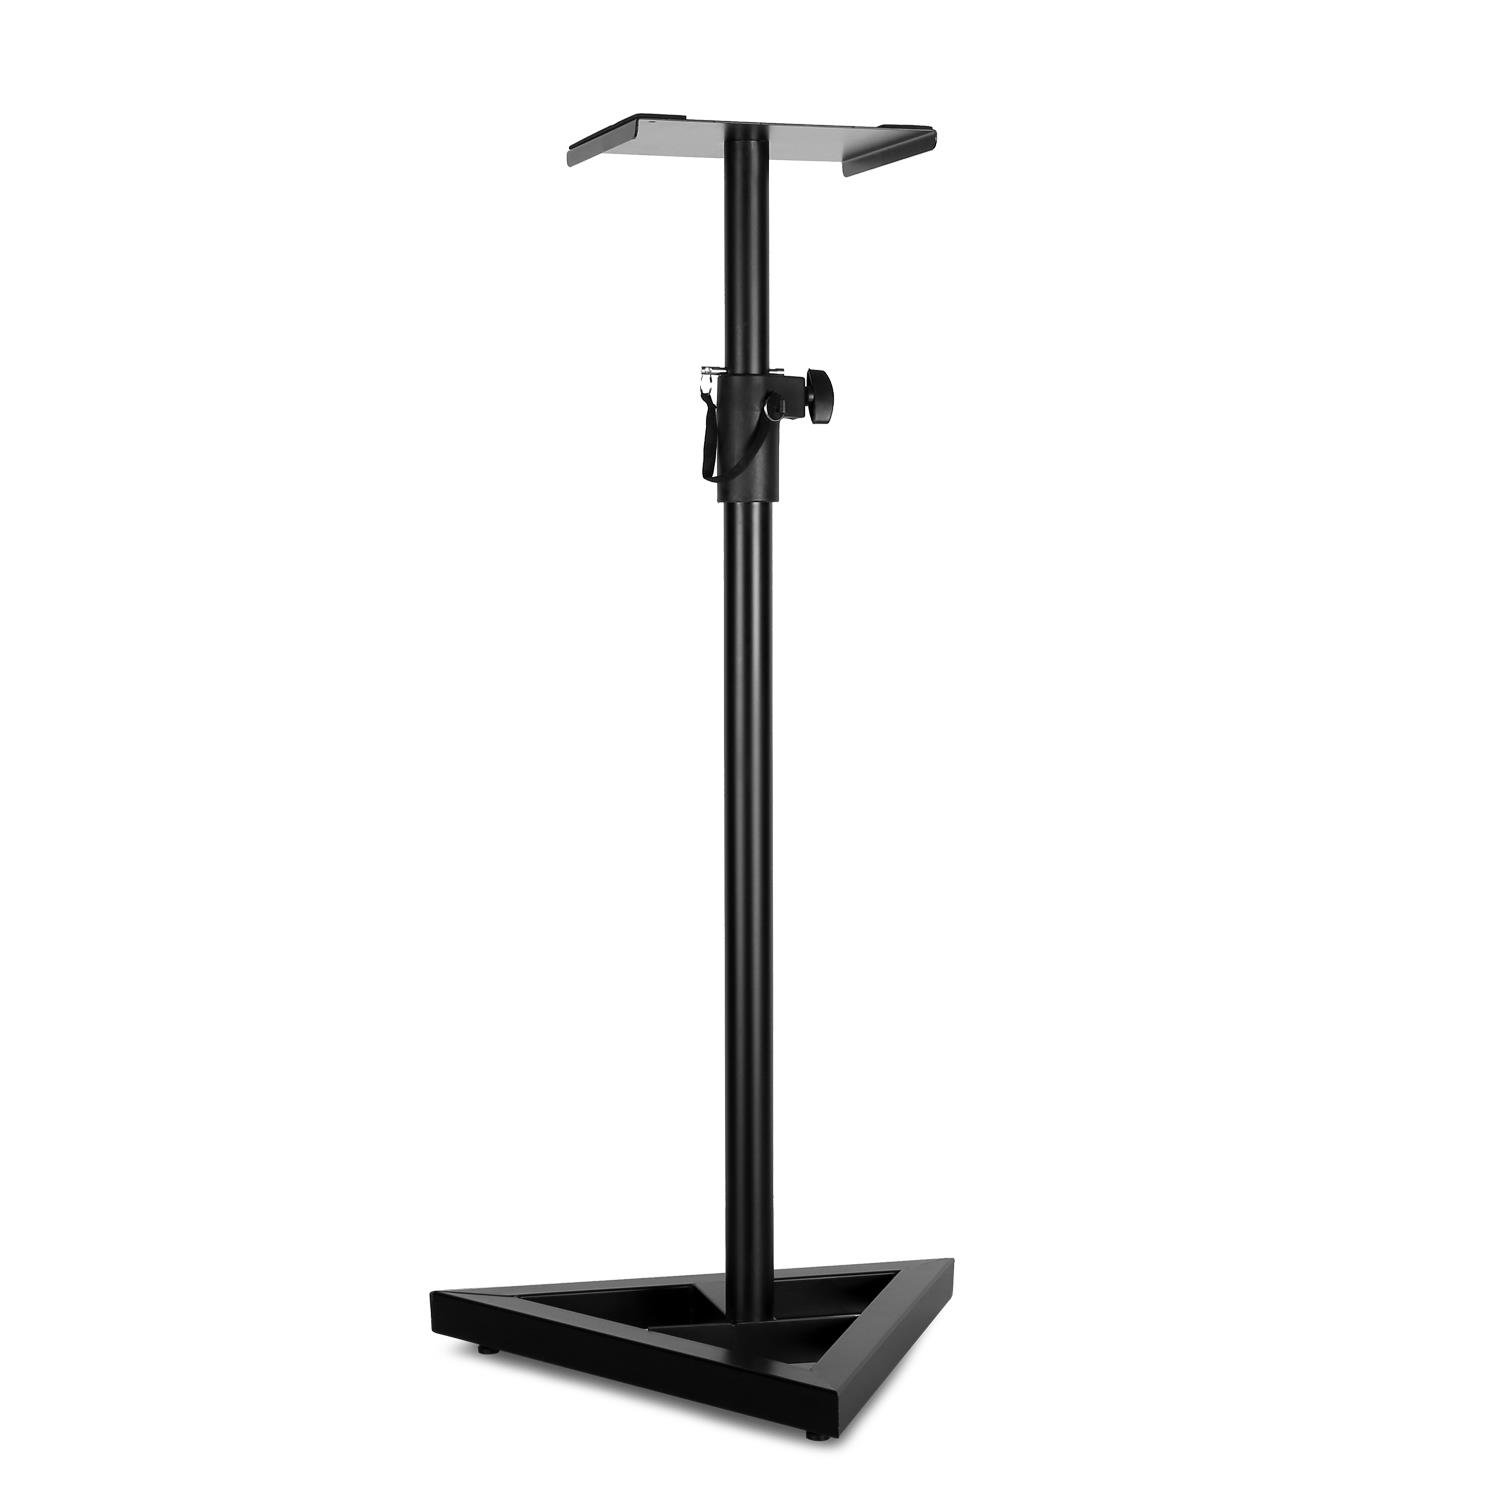 Auna Monitor-Stand 5 supporto altoparlanti nero